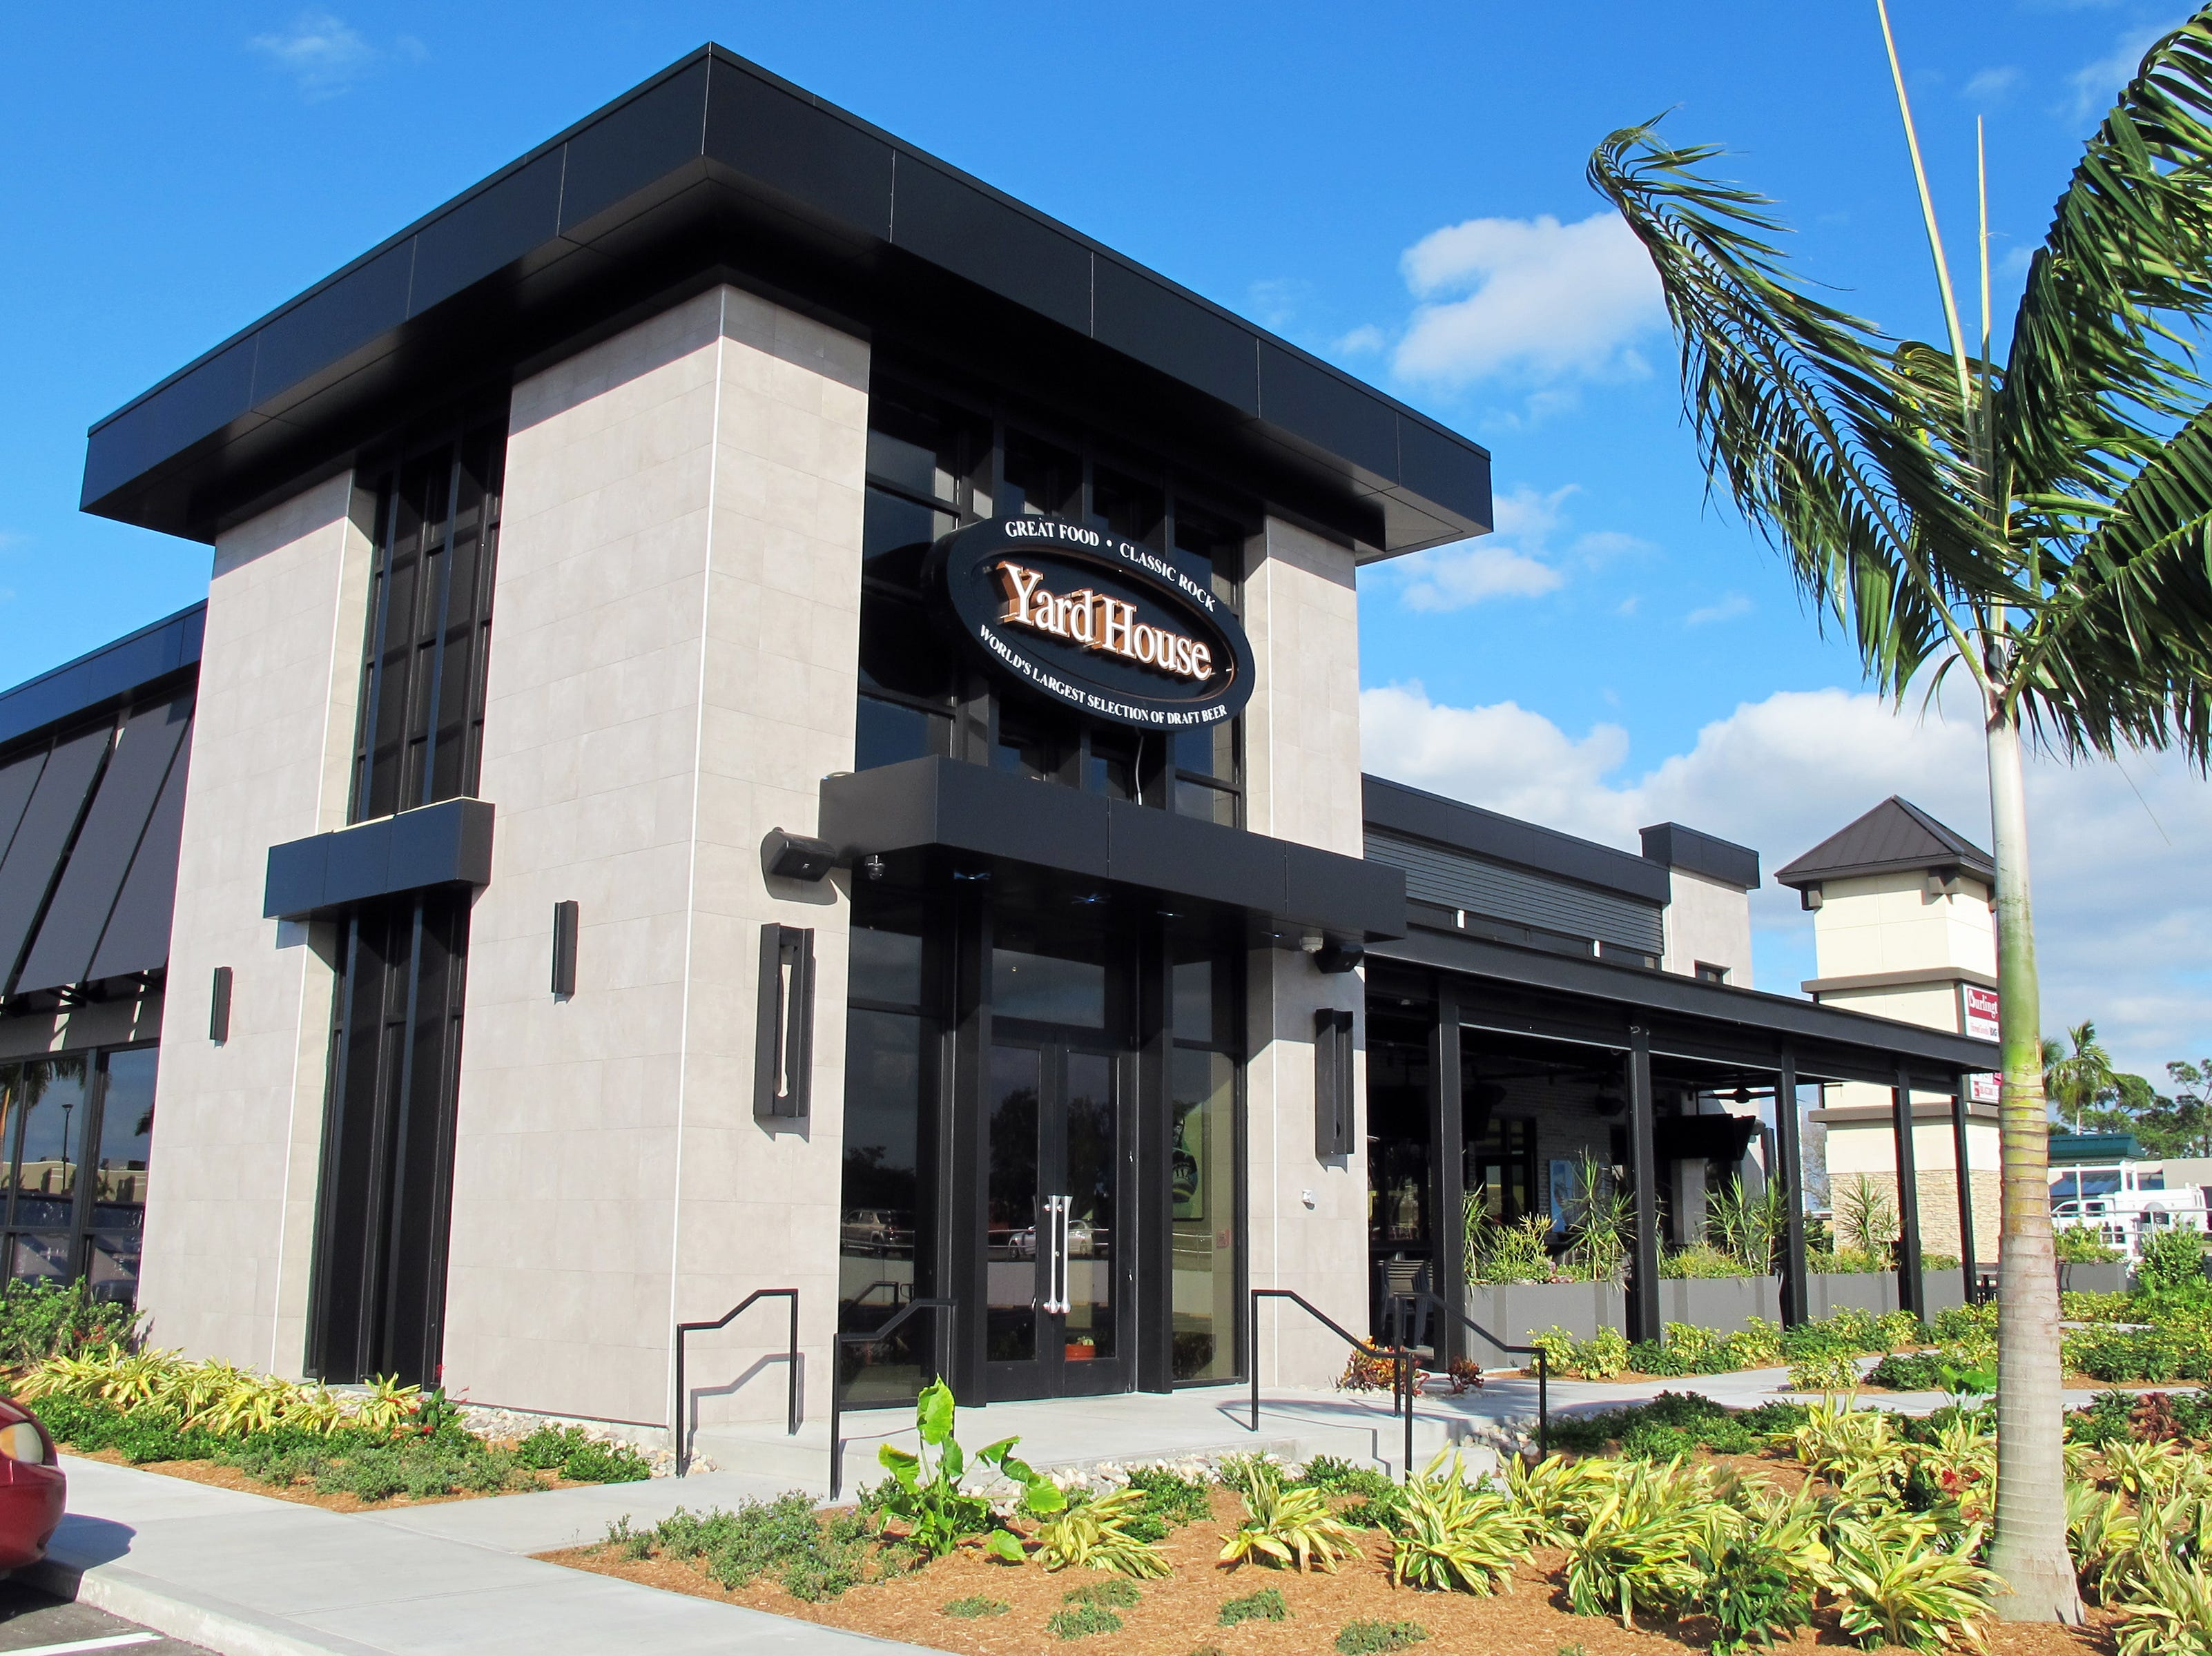 Yard House restaurant and bar will open Jan. 21, 2019, in Park Shore Plaza on U.S. 41 in Naples.